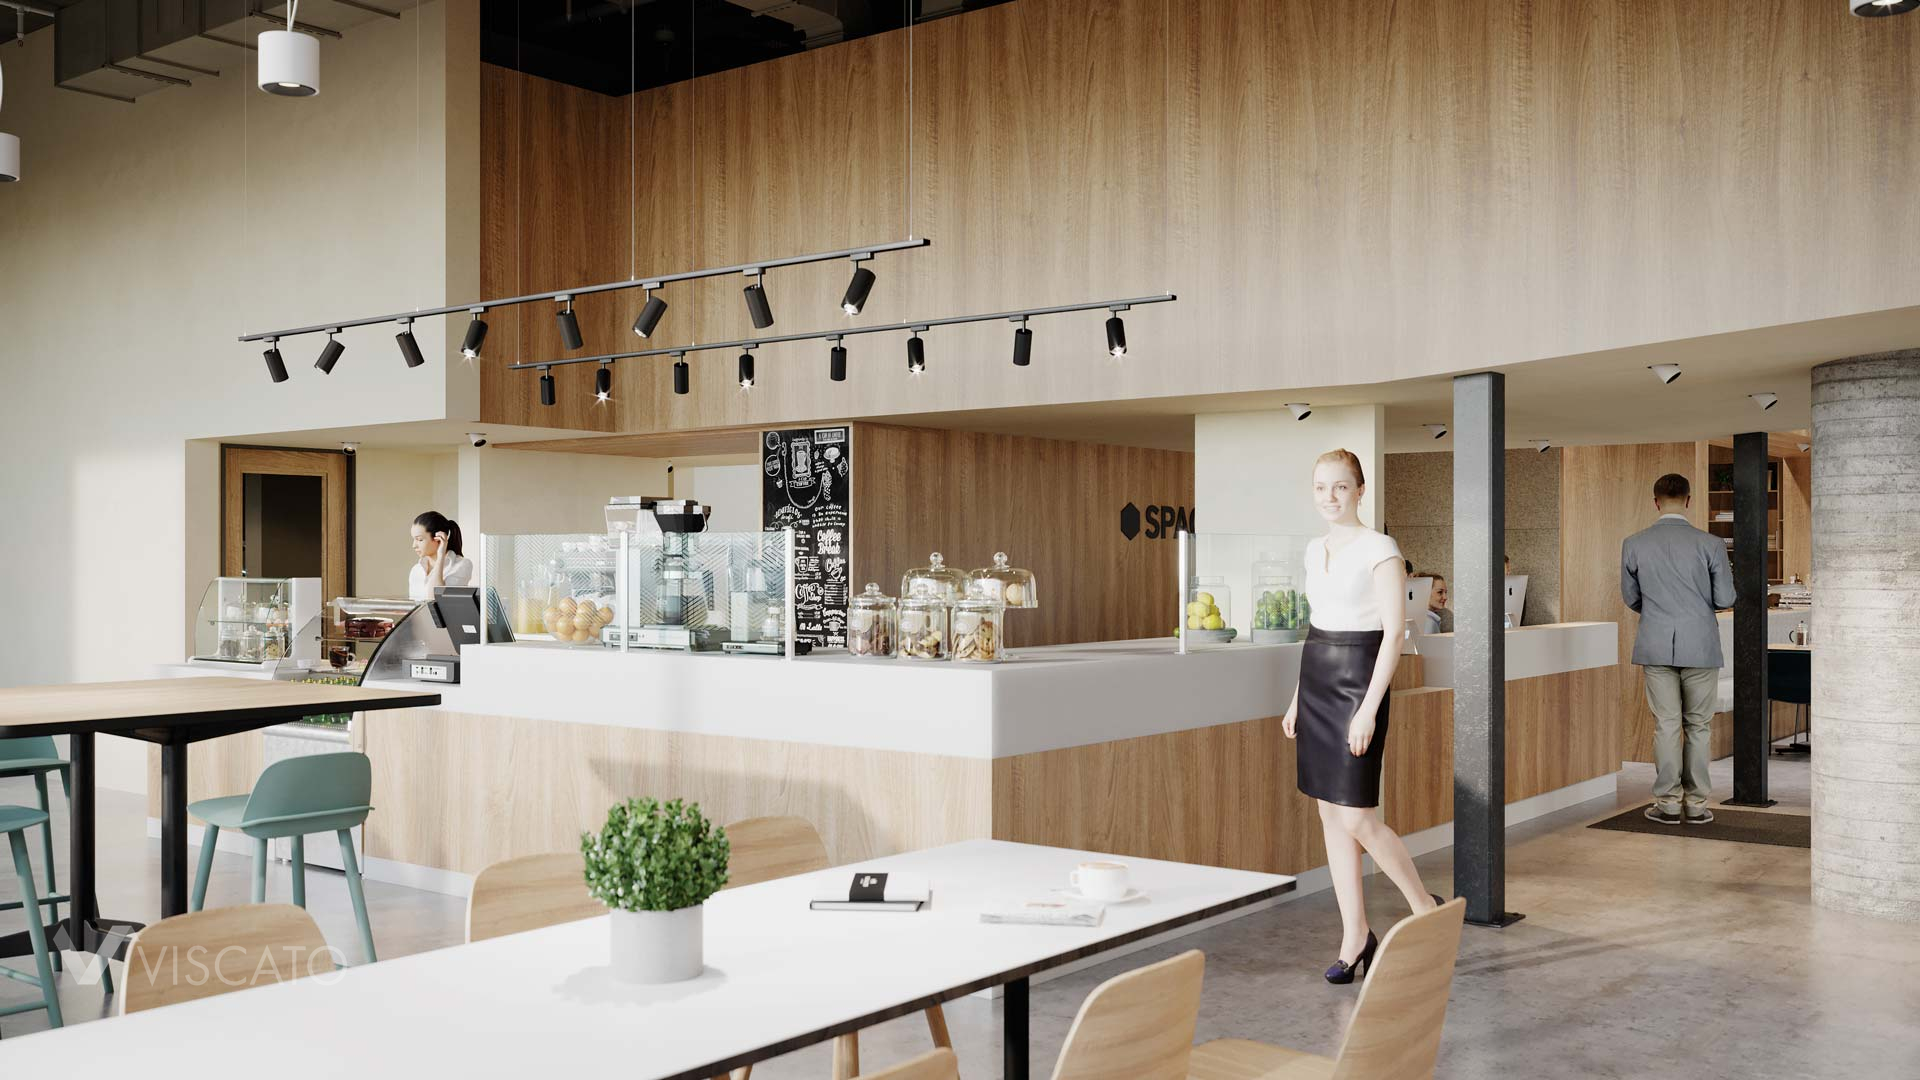 Office canteen, 3D rendering